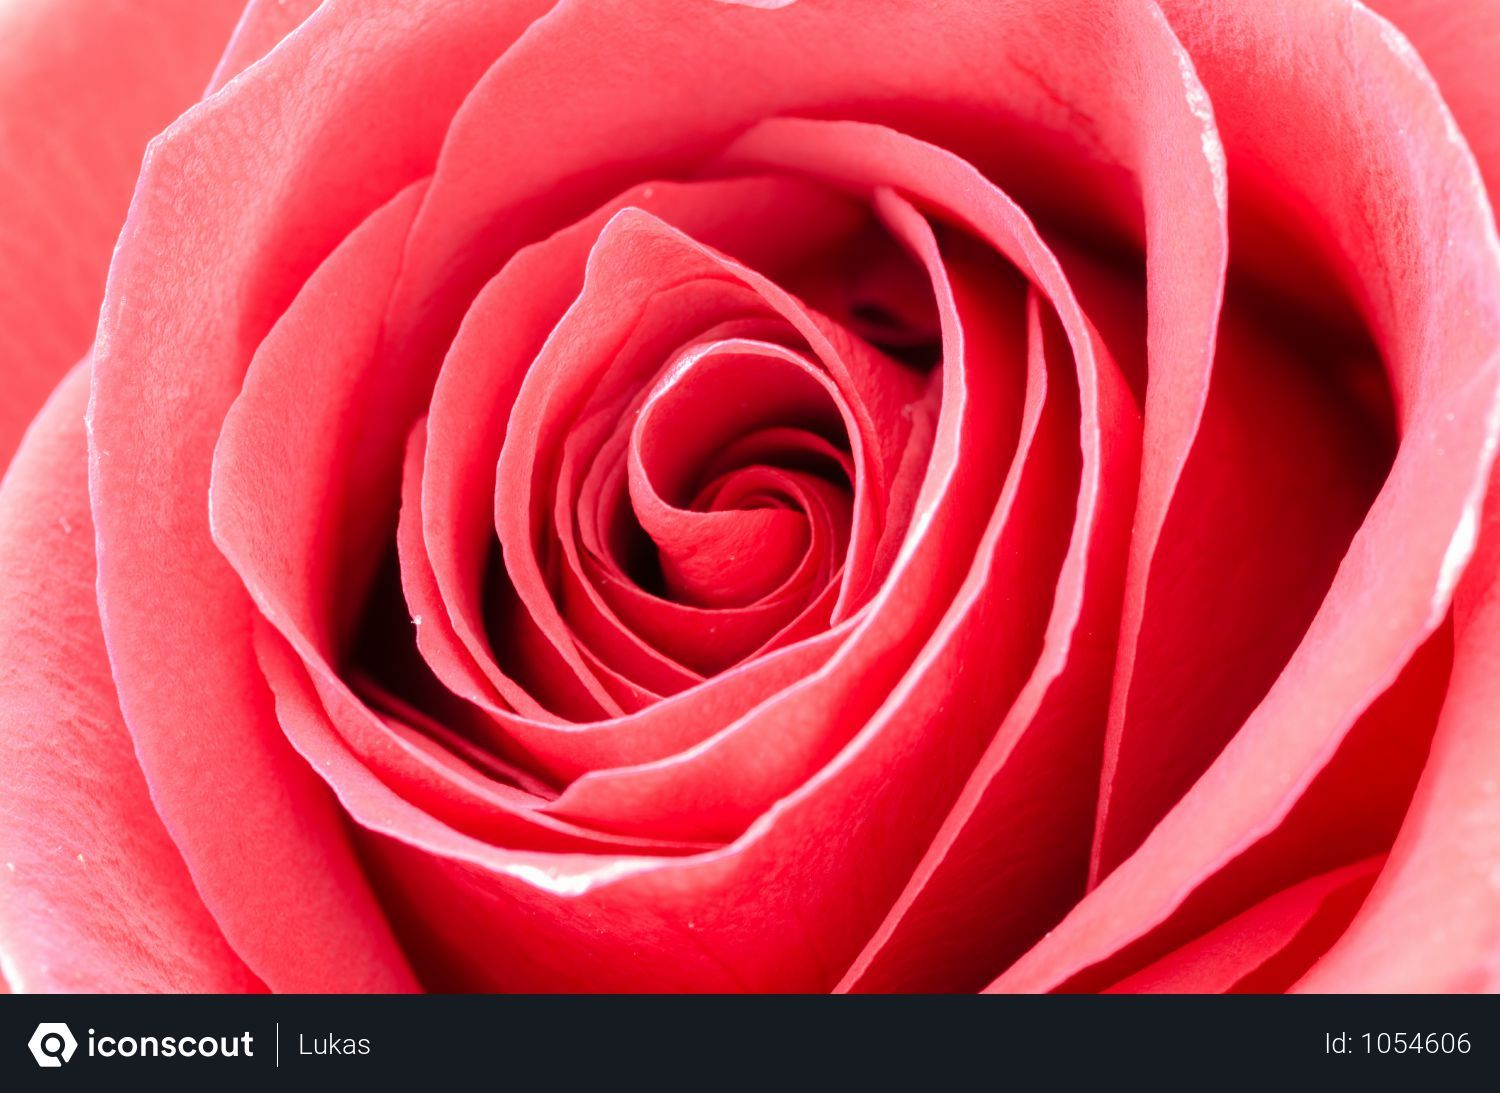 Free Close Up Of Red Rose Photo Download In Png Jpg Format Rose Photos Red Roses Rose Photo Download